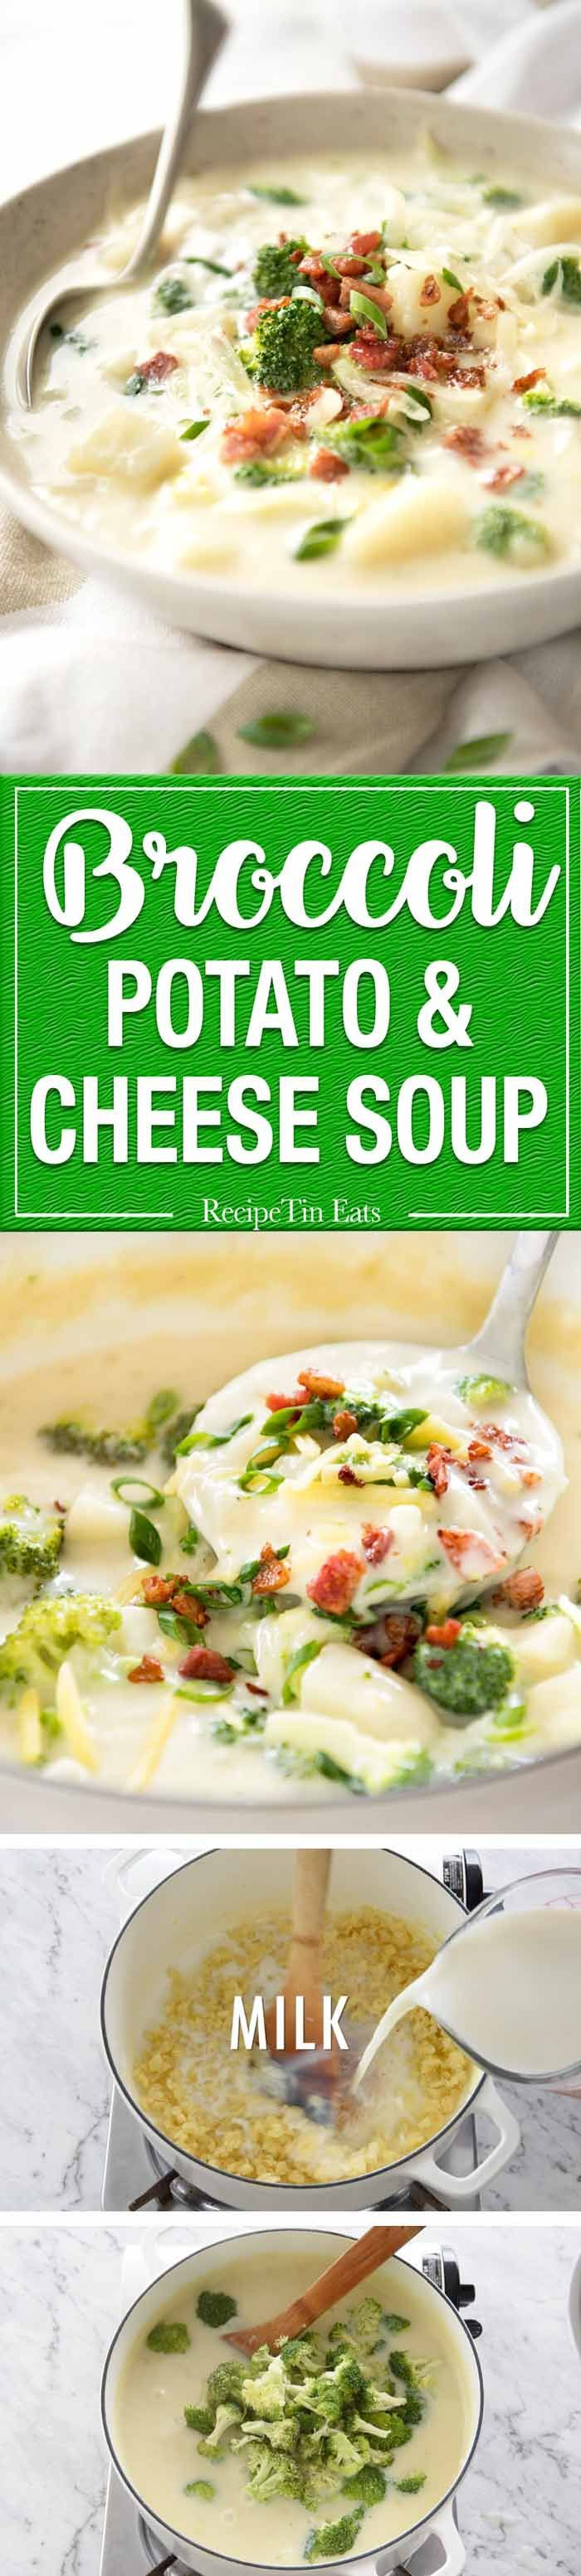 Thick and hearty, this Broccoli and Potato Soup with Cheese is fast and easy to make. Recipe video included. www.recipetineats.com